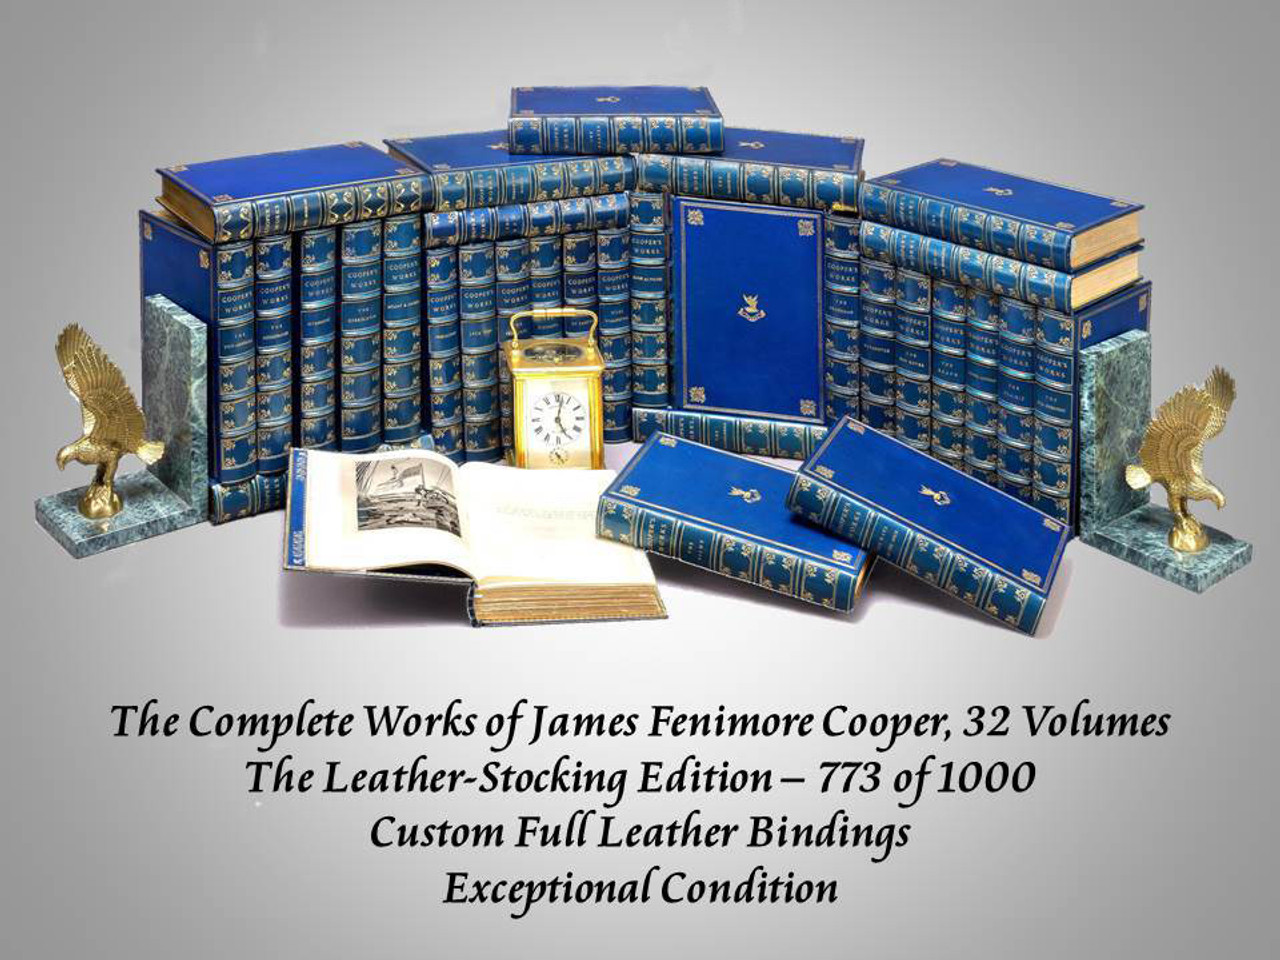 The Complete Works of James Fenimore Cooper, 32 Volumes, 1895 Limited Edition